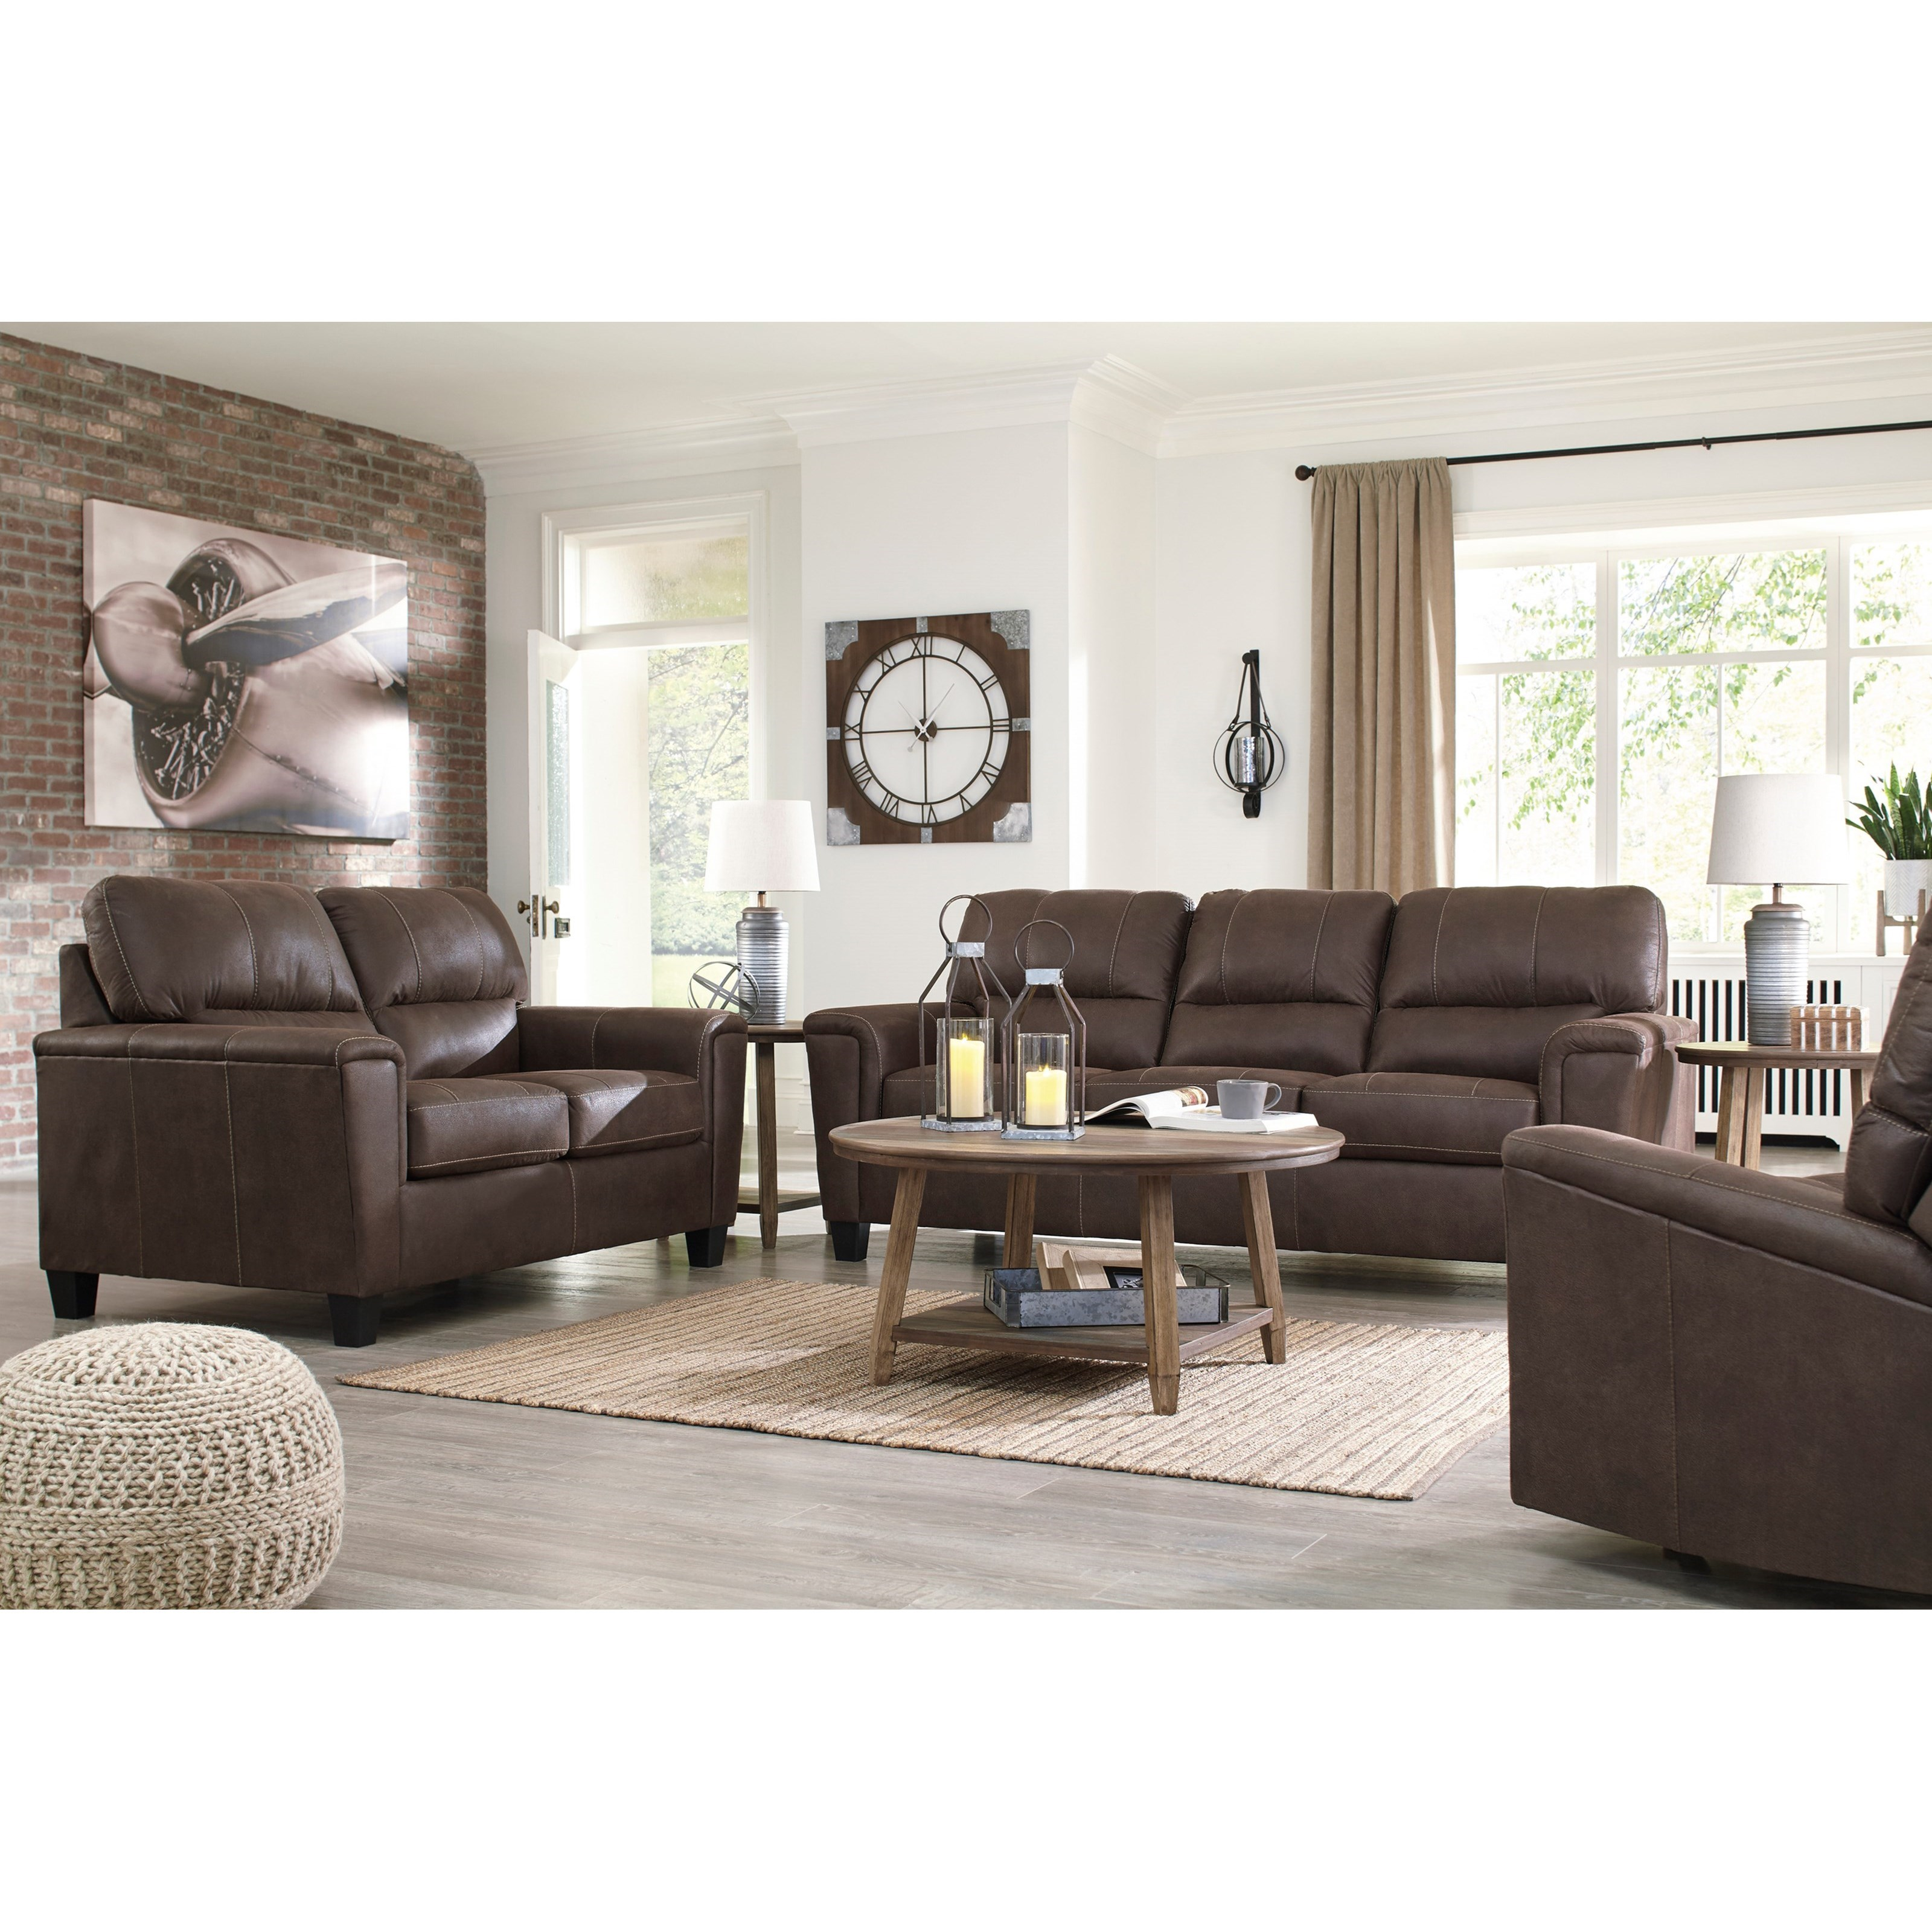 Navi Living Room Group by Signature Design by Ashley at Northeast Factory Direct